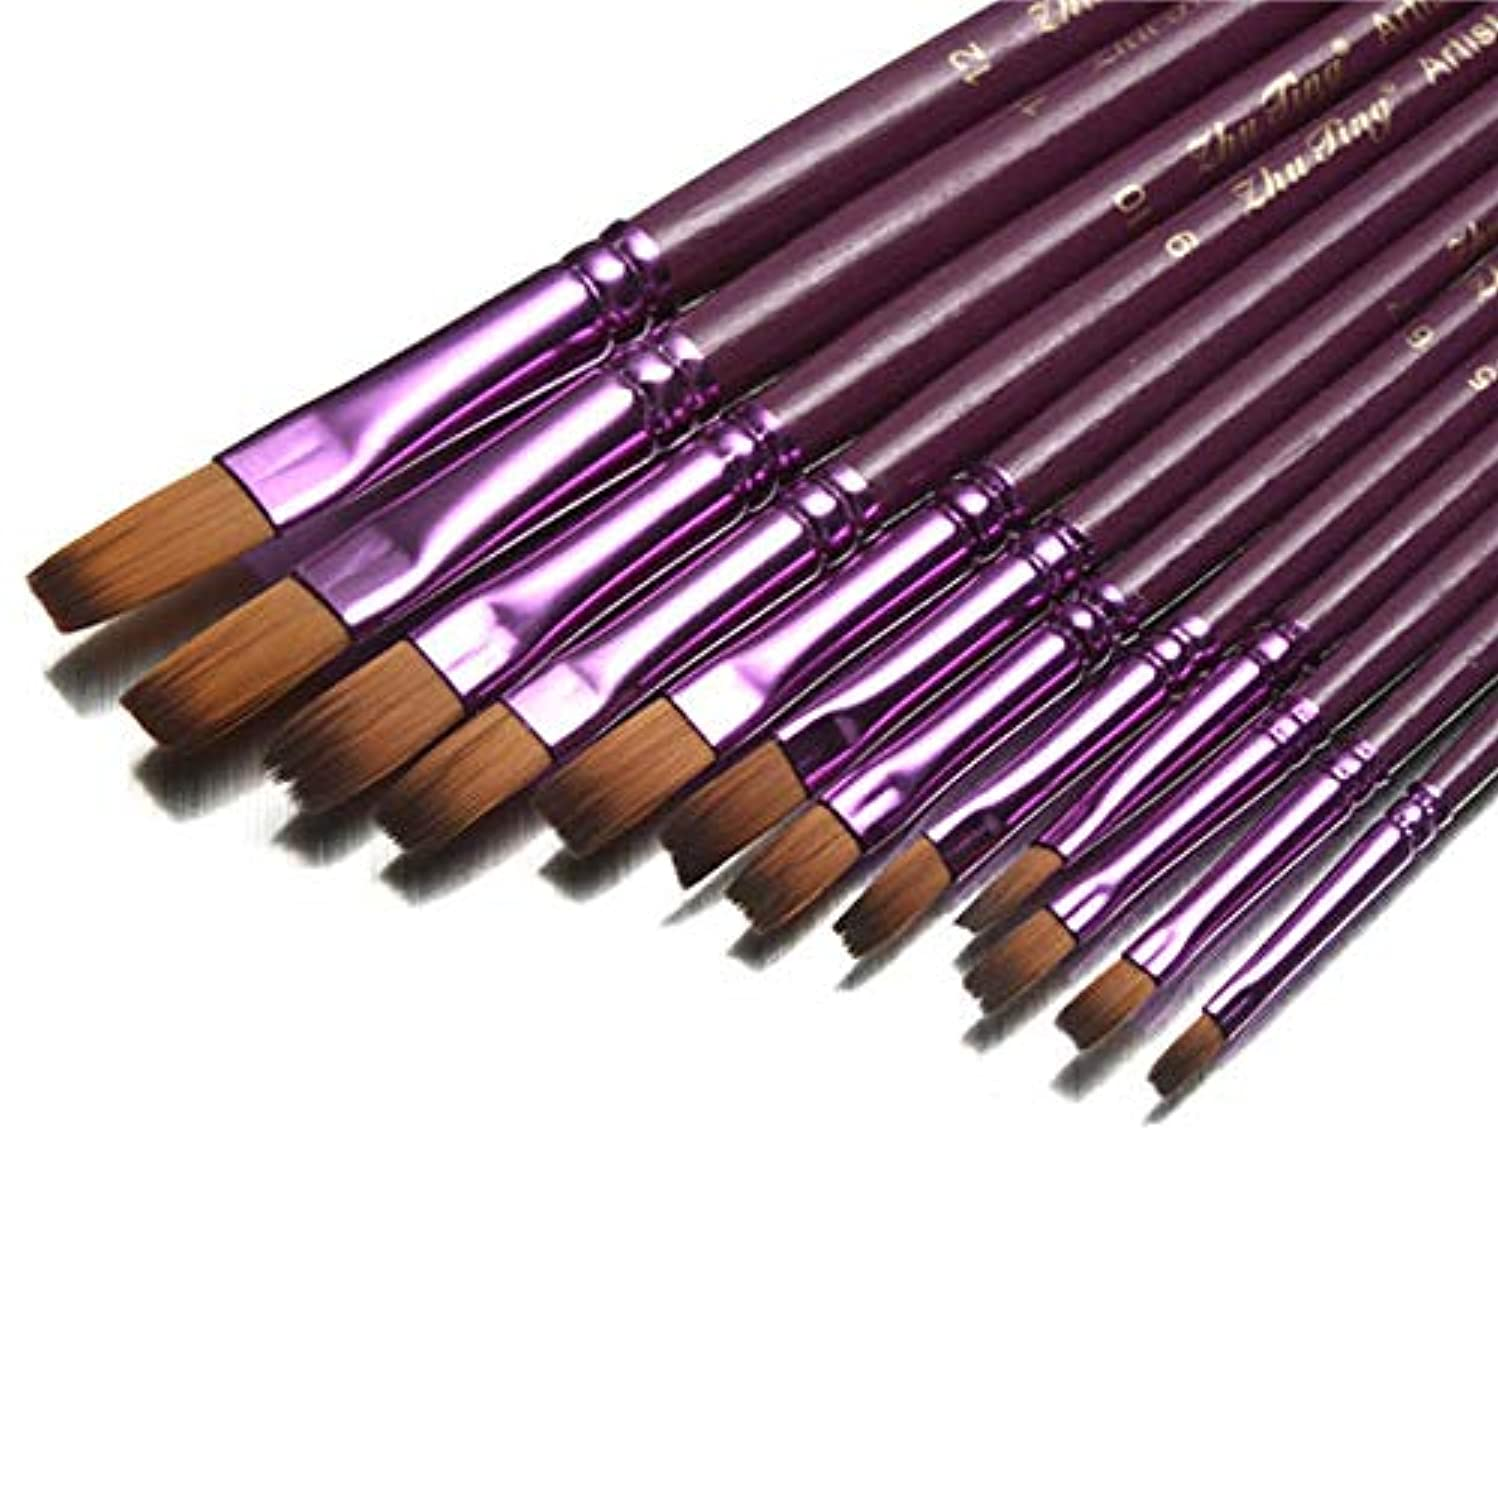 Tanchen 12pcs Flat Tip Round Tip Painting Brushes Artist Nylon Hair Watercolor Oil Drawing Pen